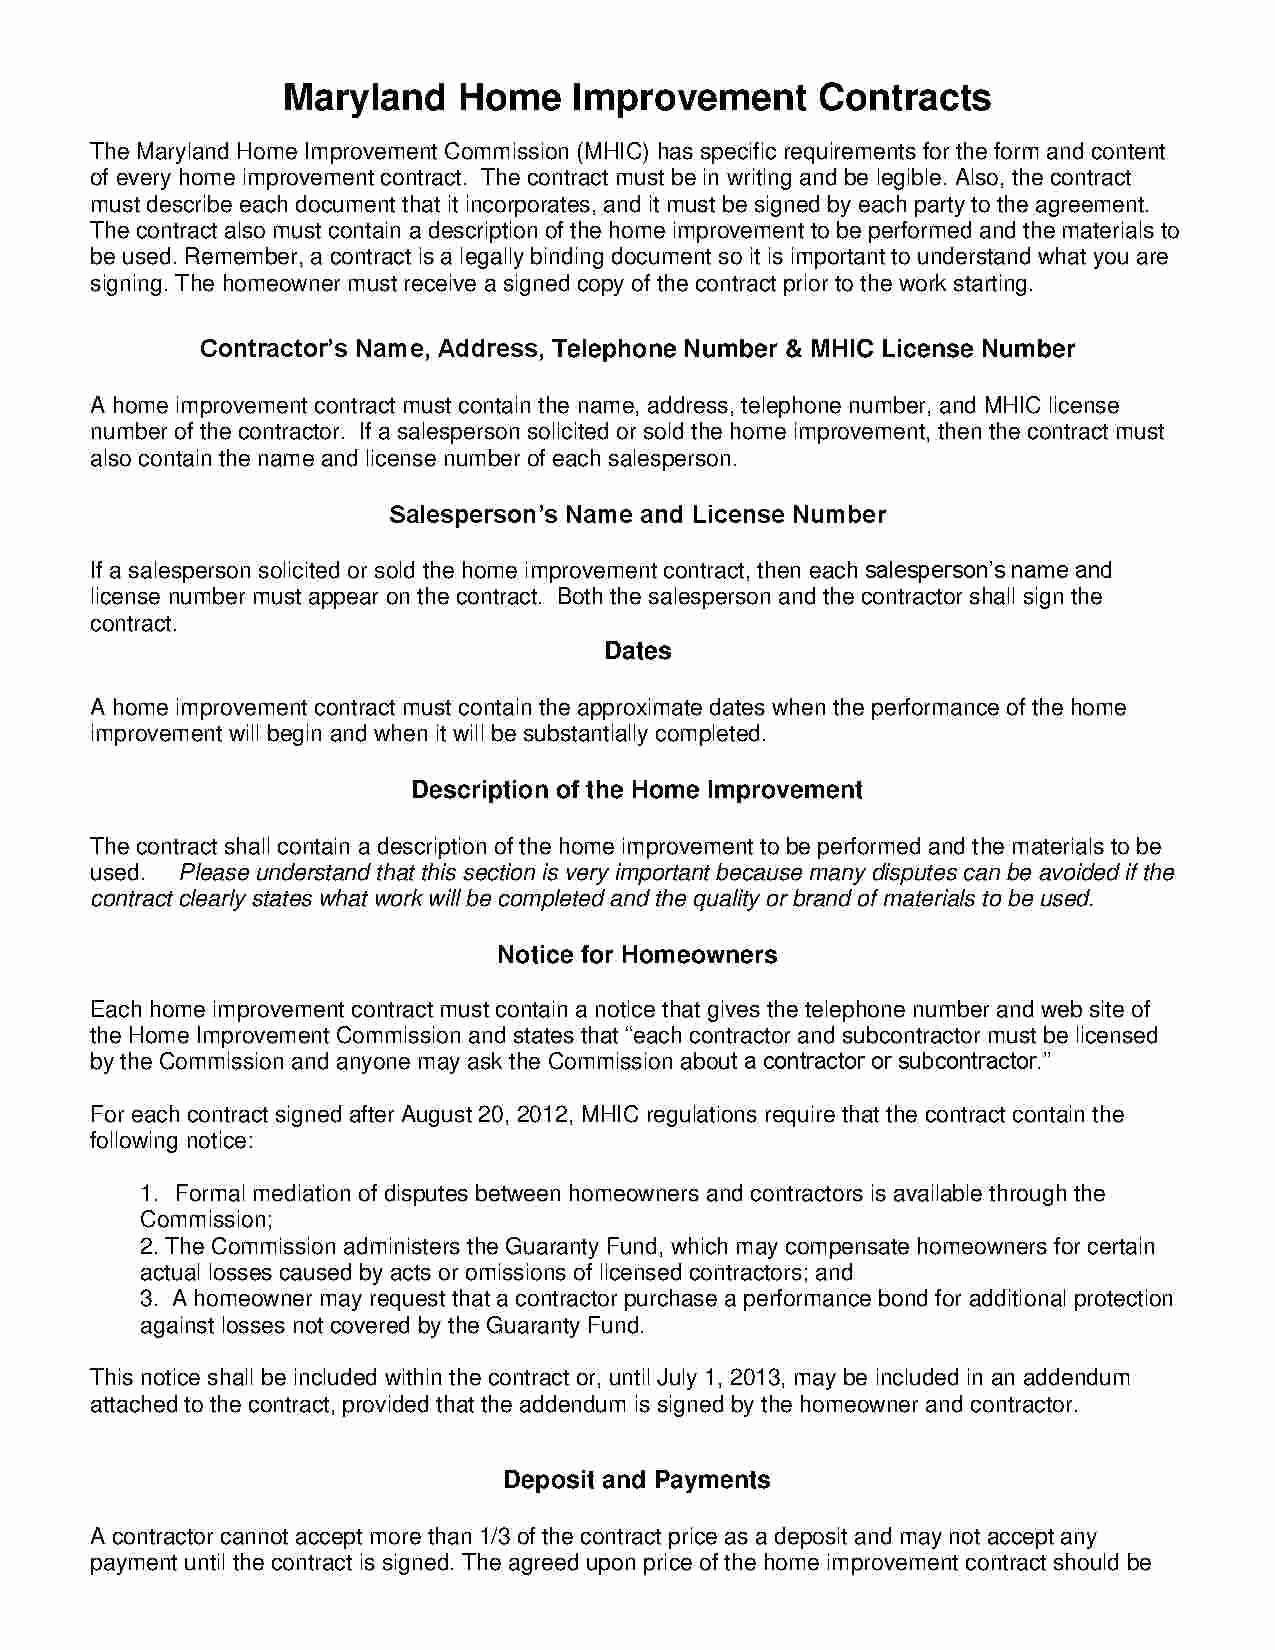 Home Improvement Contract Template Lovely Download Home Improvement Contract Style 18 Template for Free at Templates Hunter